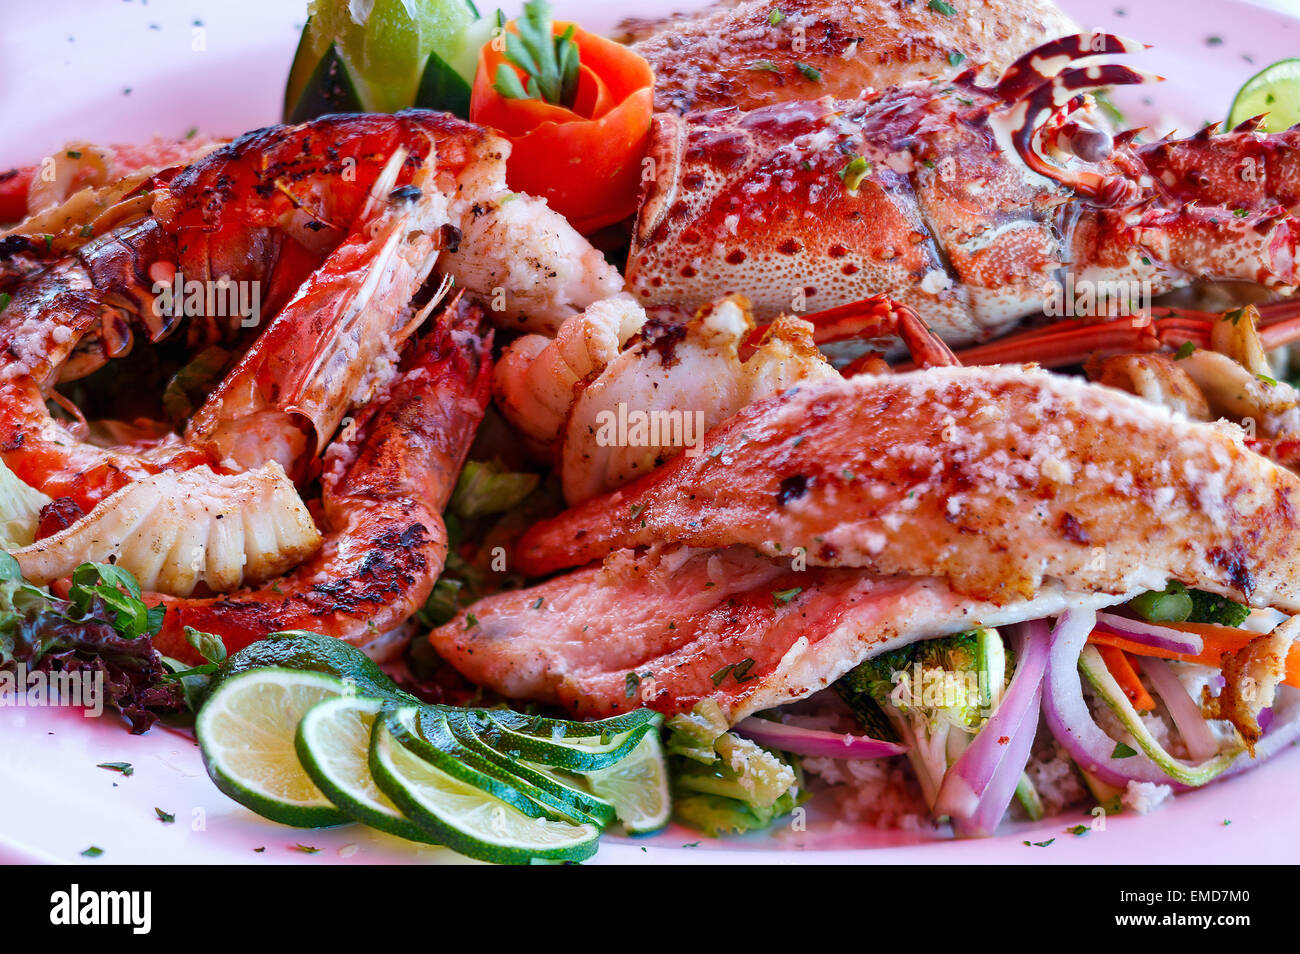 Grilled seafood platter - Stock Image